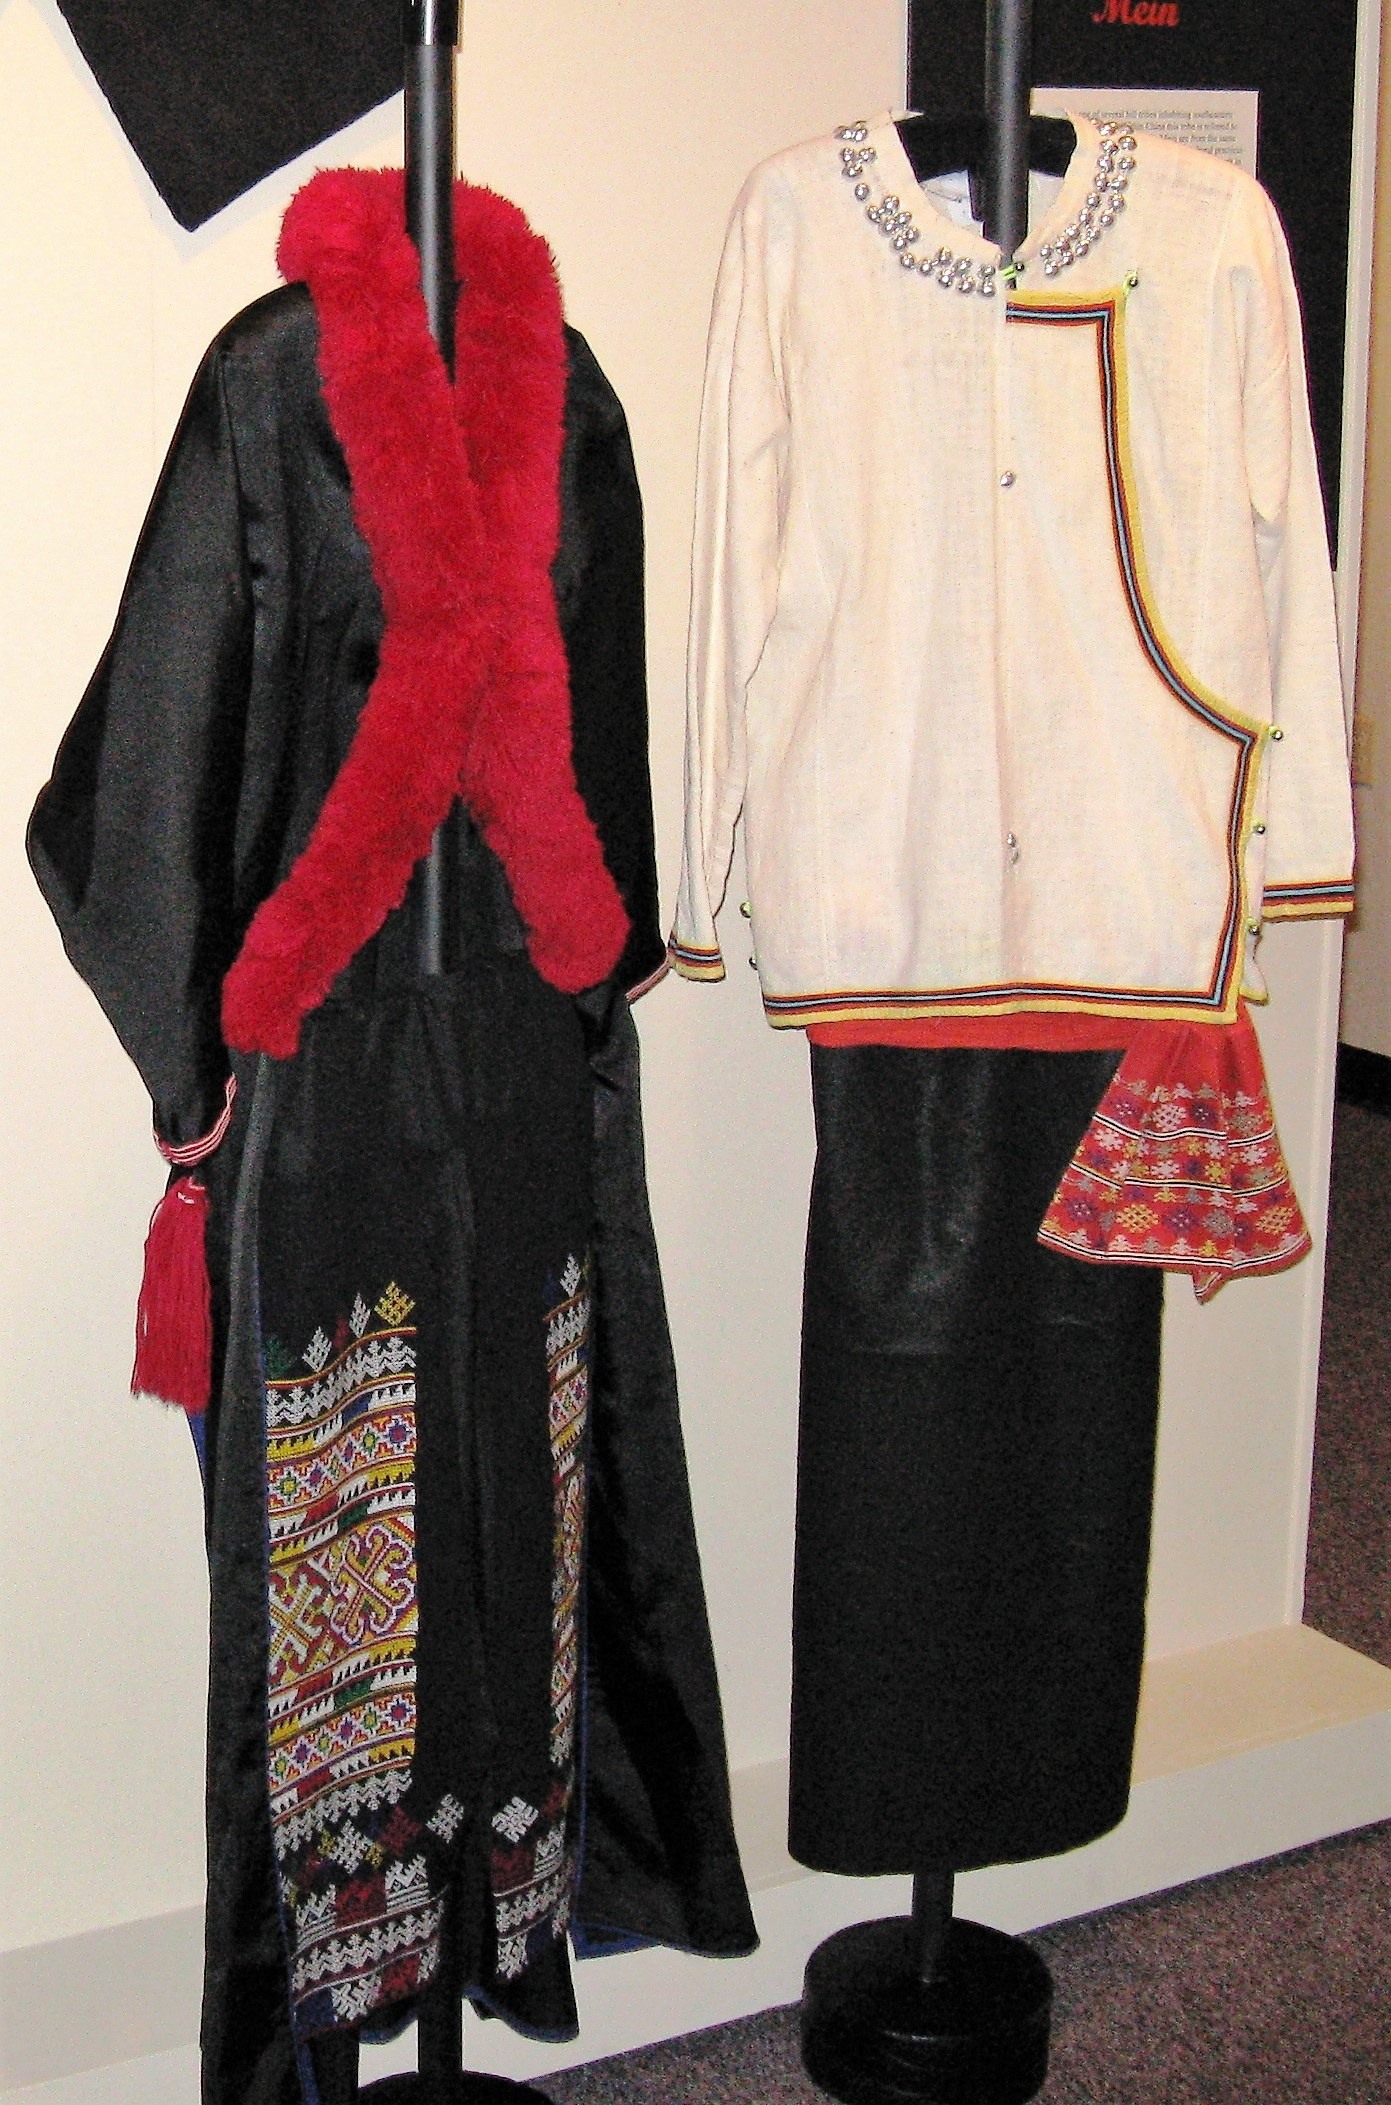 Mein wedding outfits